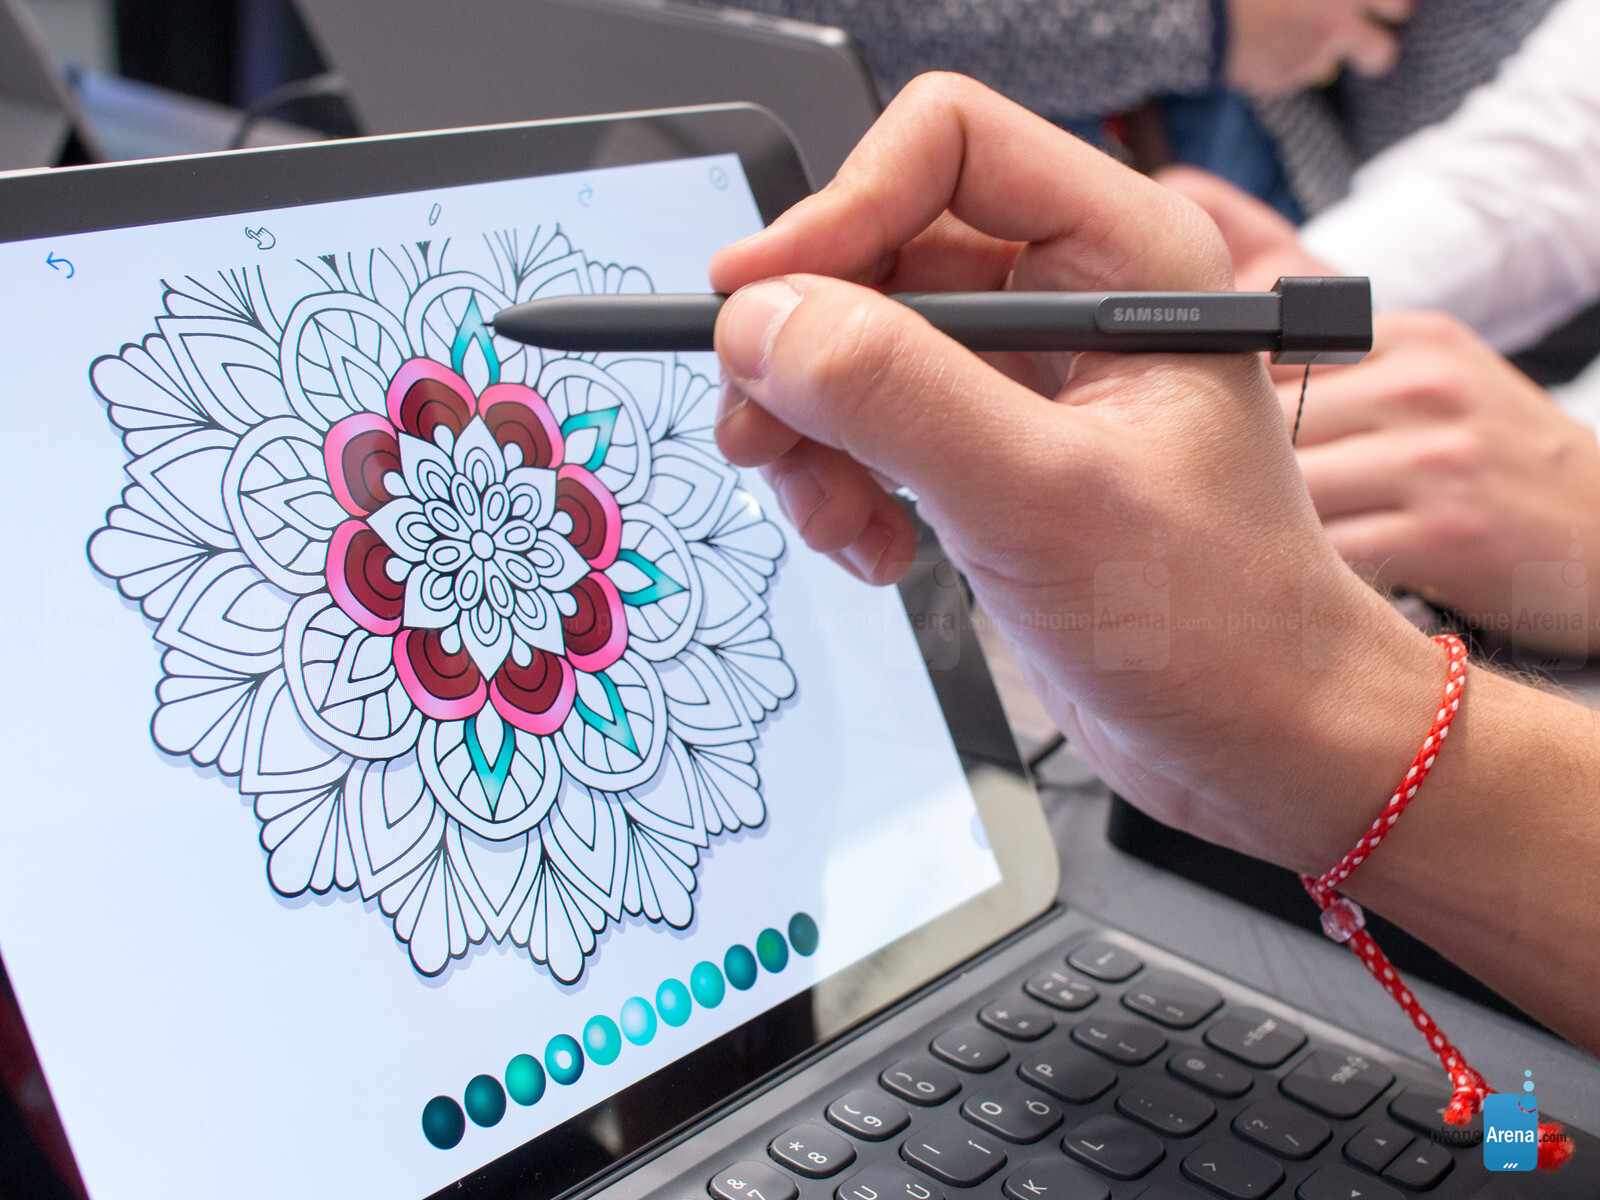 Recolor On The Galaxy Tab S3 Is Like A Coloring Book For Grown Up Kids